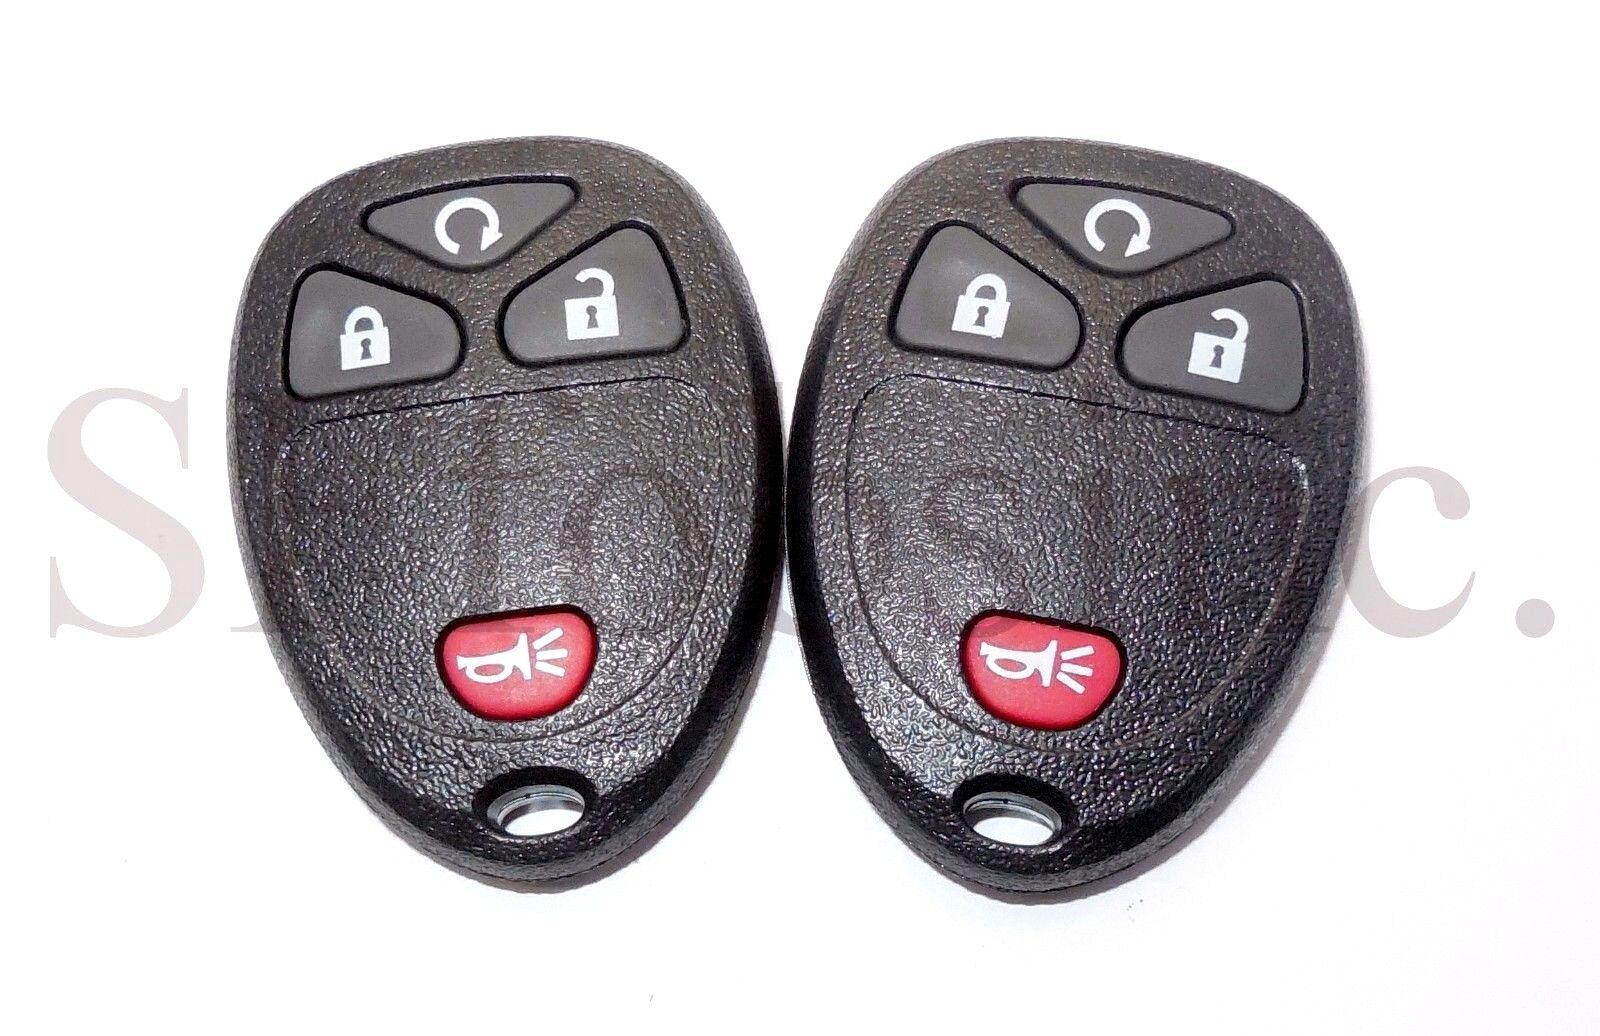 NEW PAIR GMC CHEVY BUICK KEYLESS REMOTE CLICKER TRANSMITTER OUC60221 OUC60270